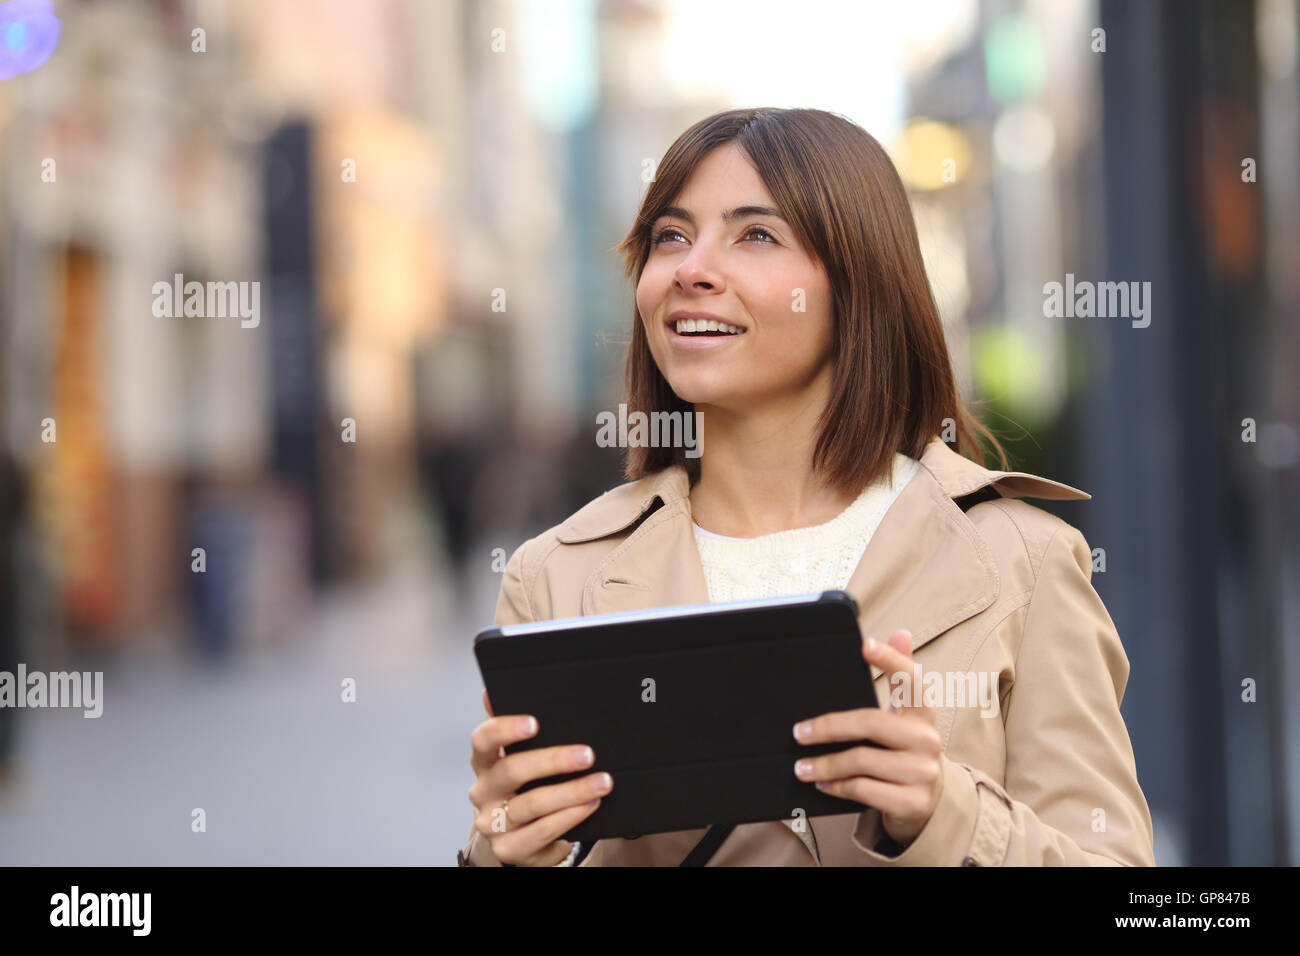 Tourist walking and consulting a guide in a tablet and watching amazed the street - Stock Image